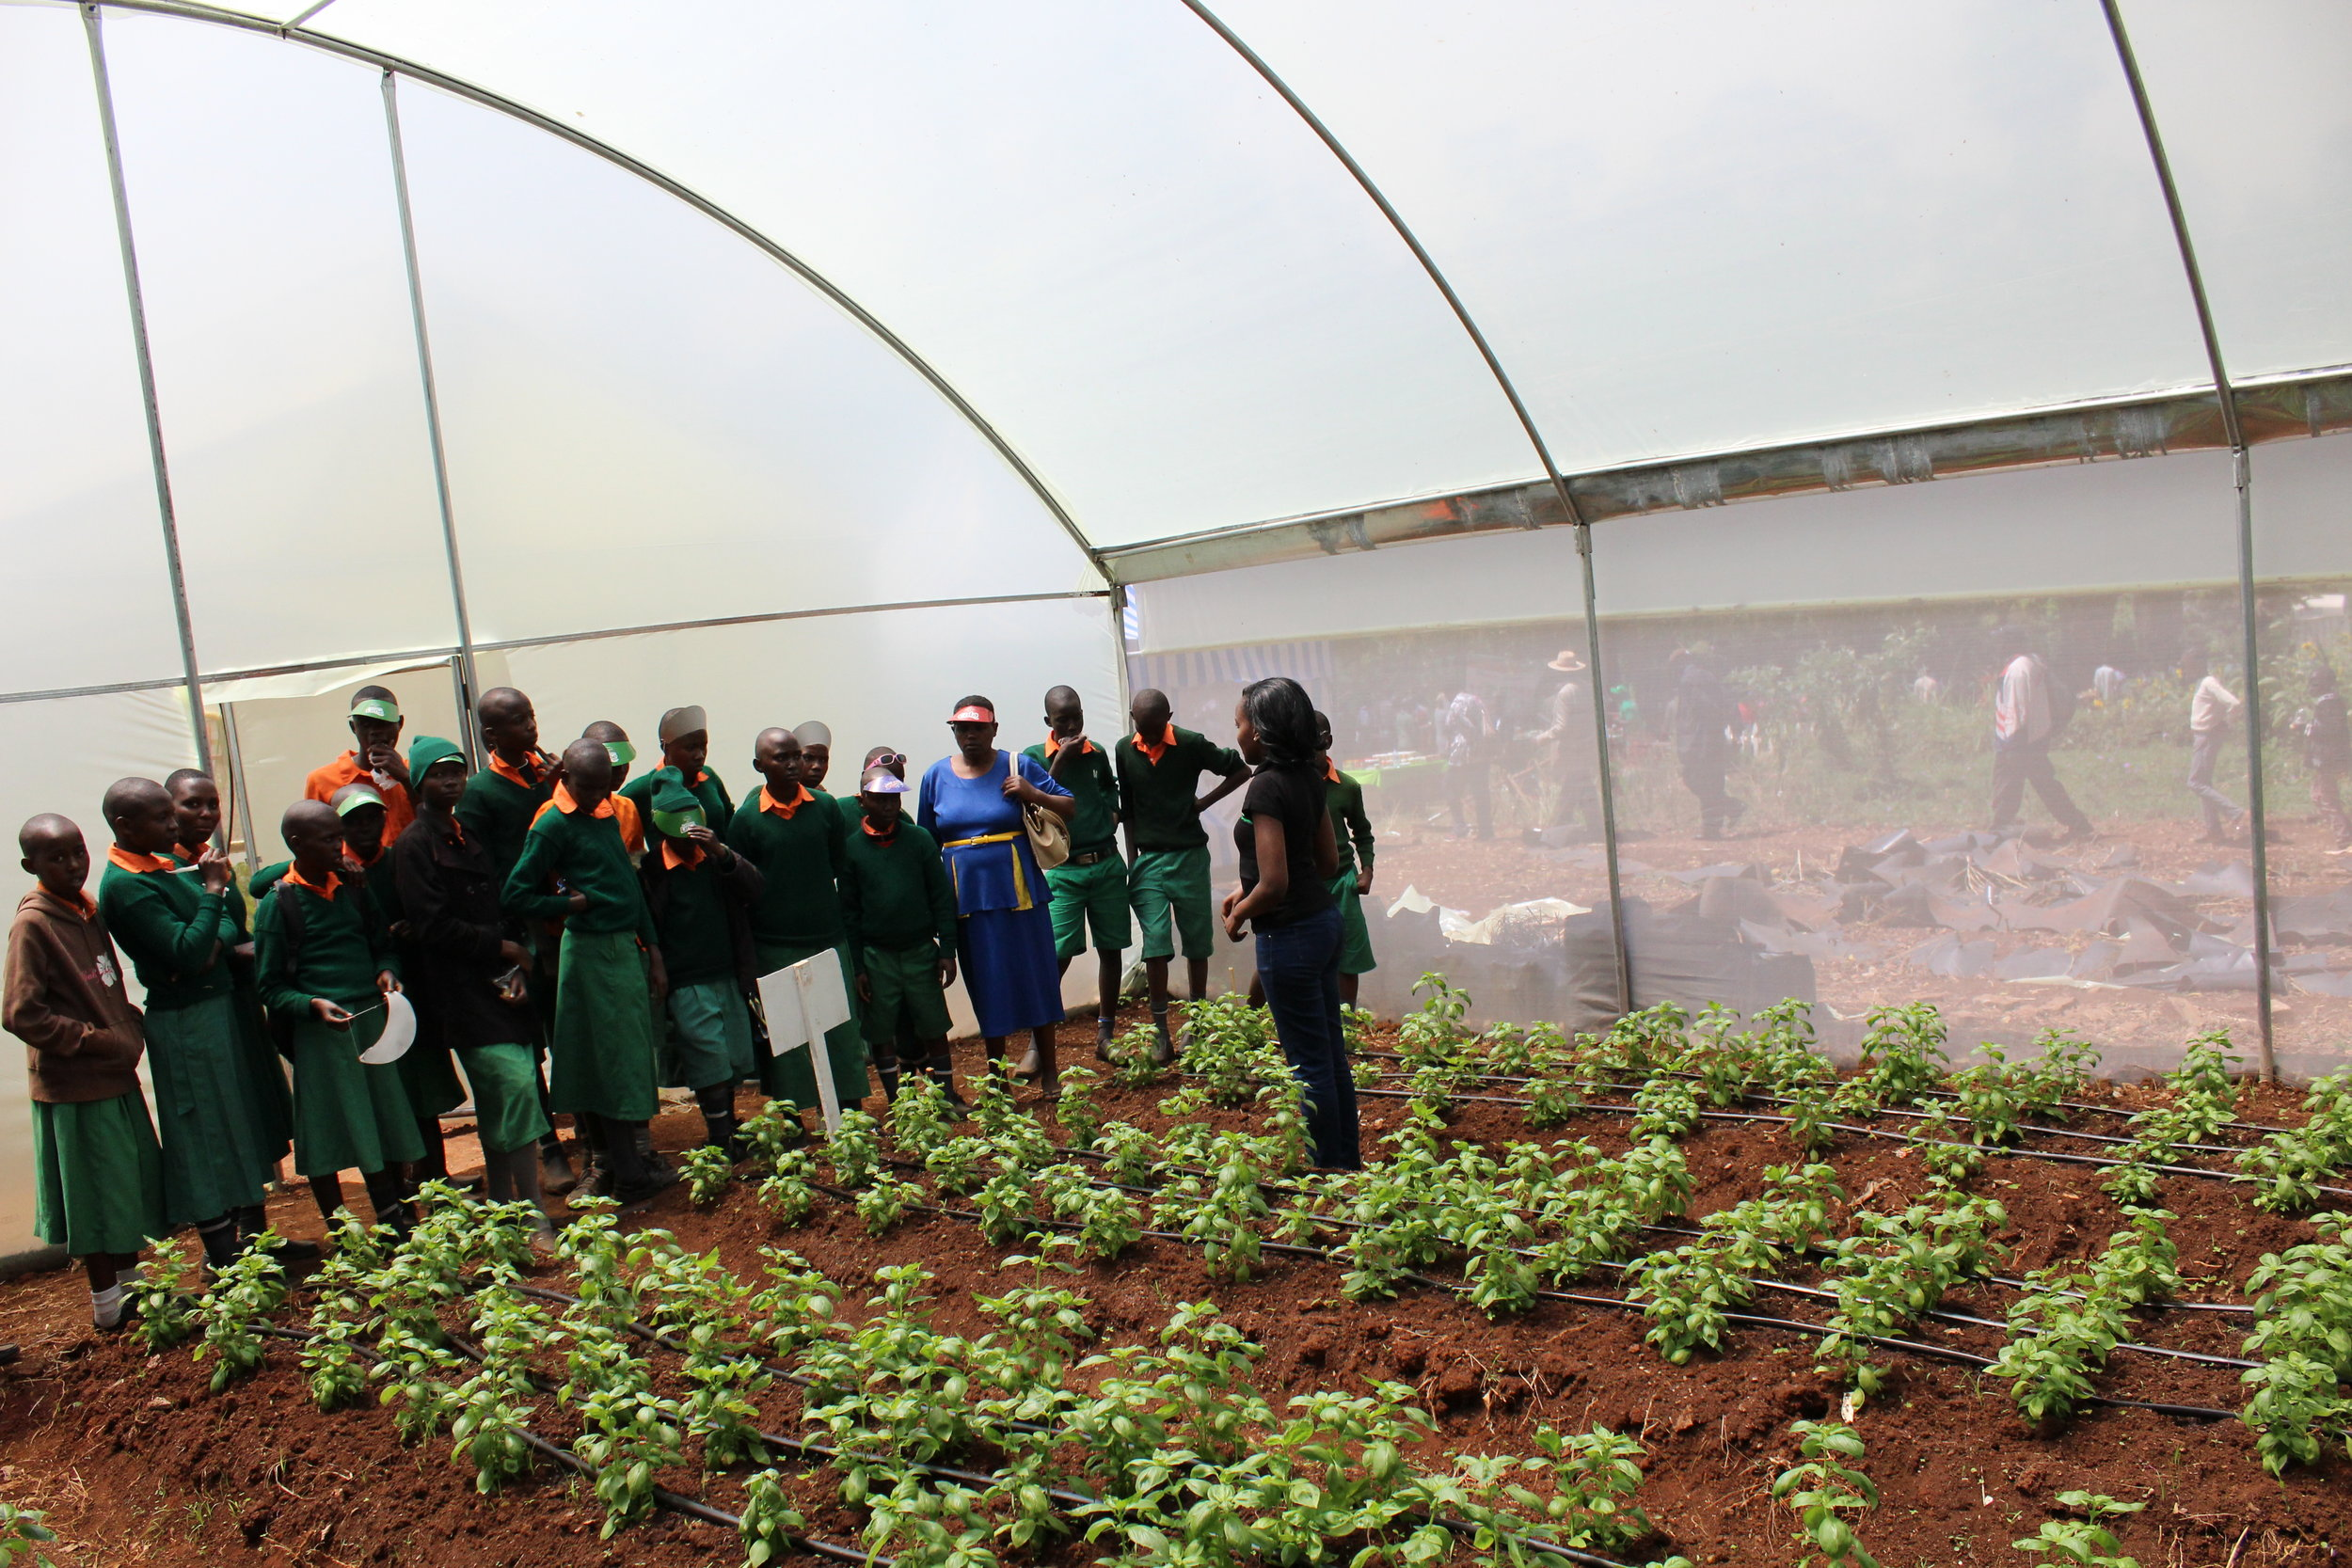 An Illuminum Greenhouses staff member speaks to students about the benefits of using greenhouses at the Nairobi International Trade Fair, 2016